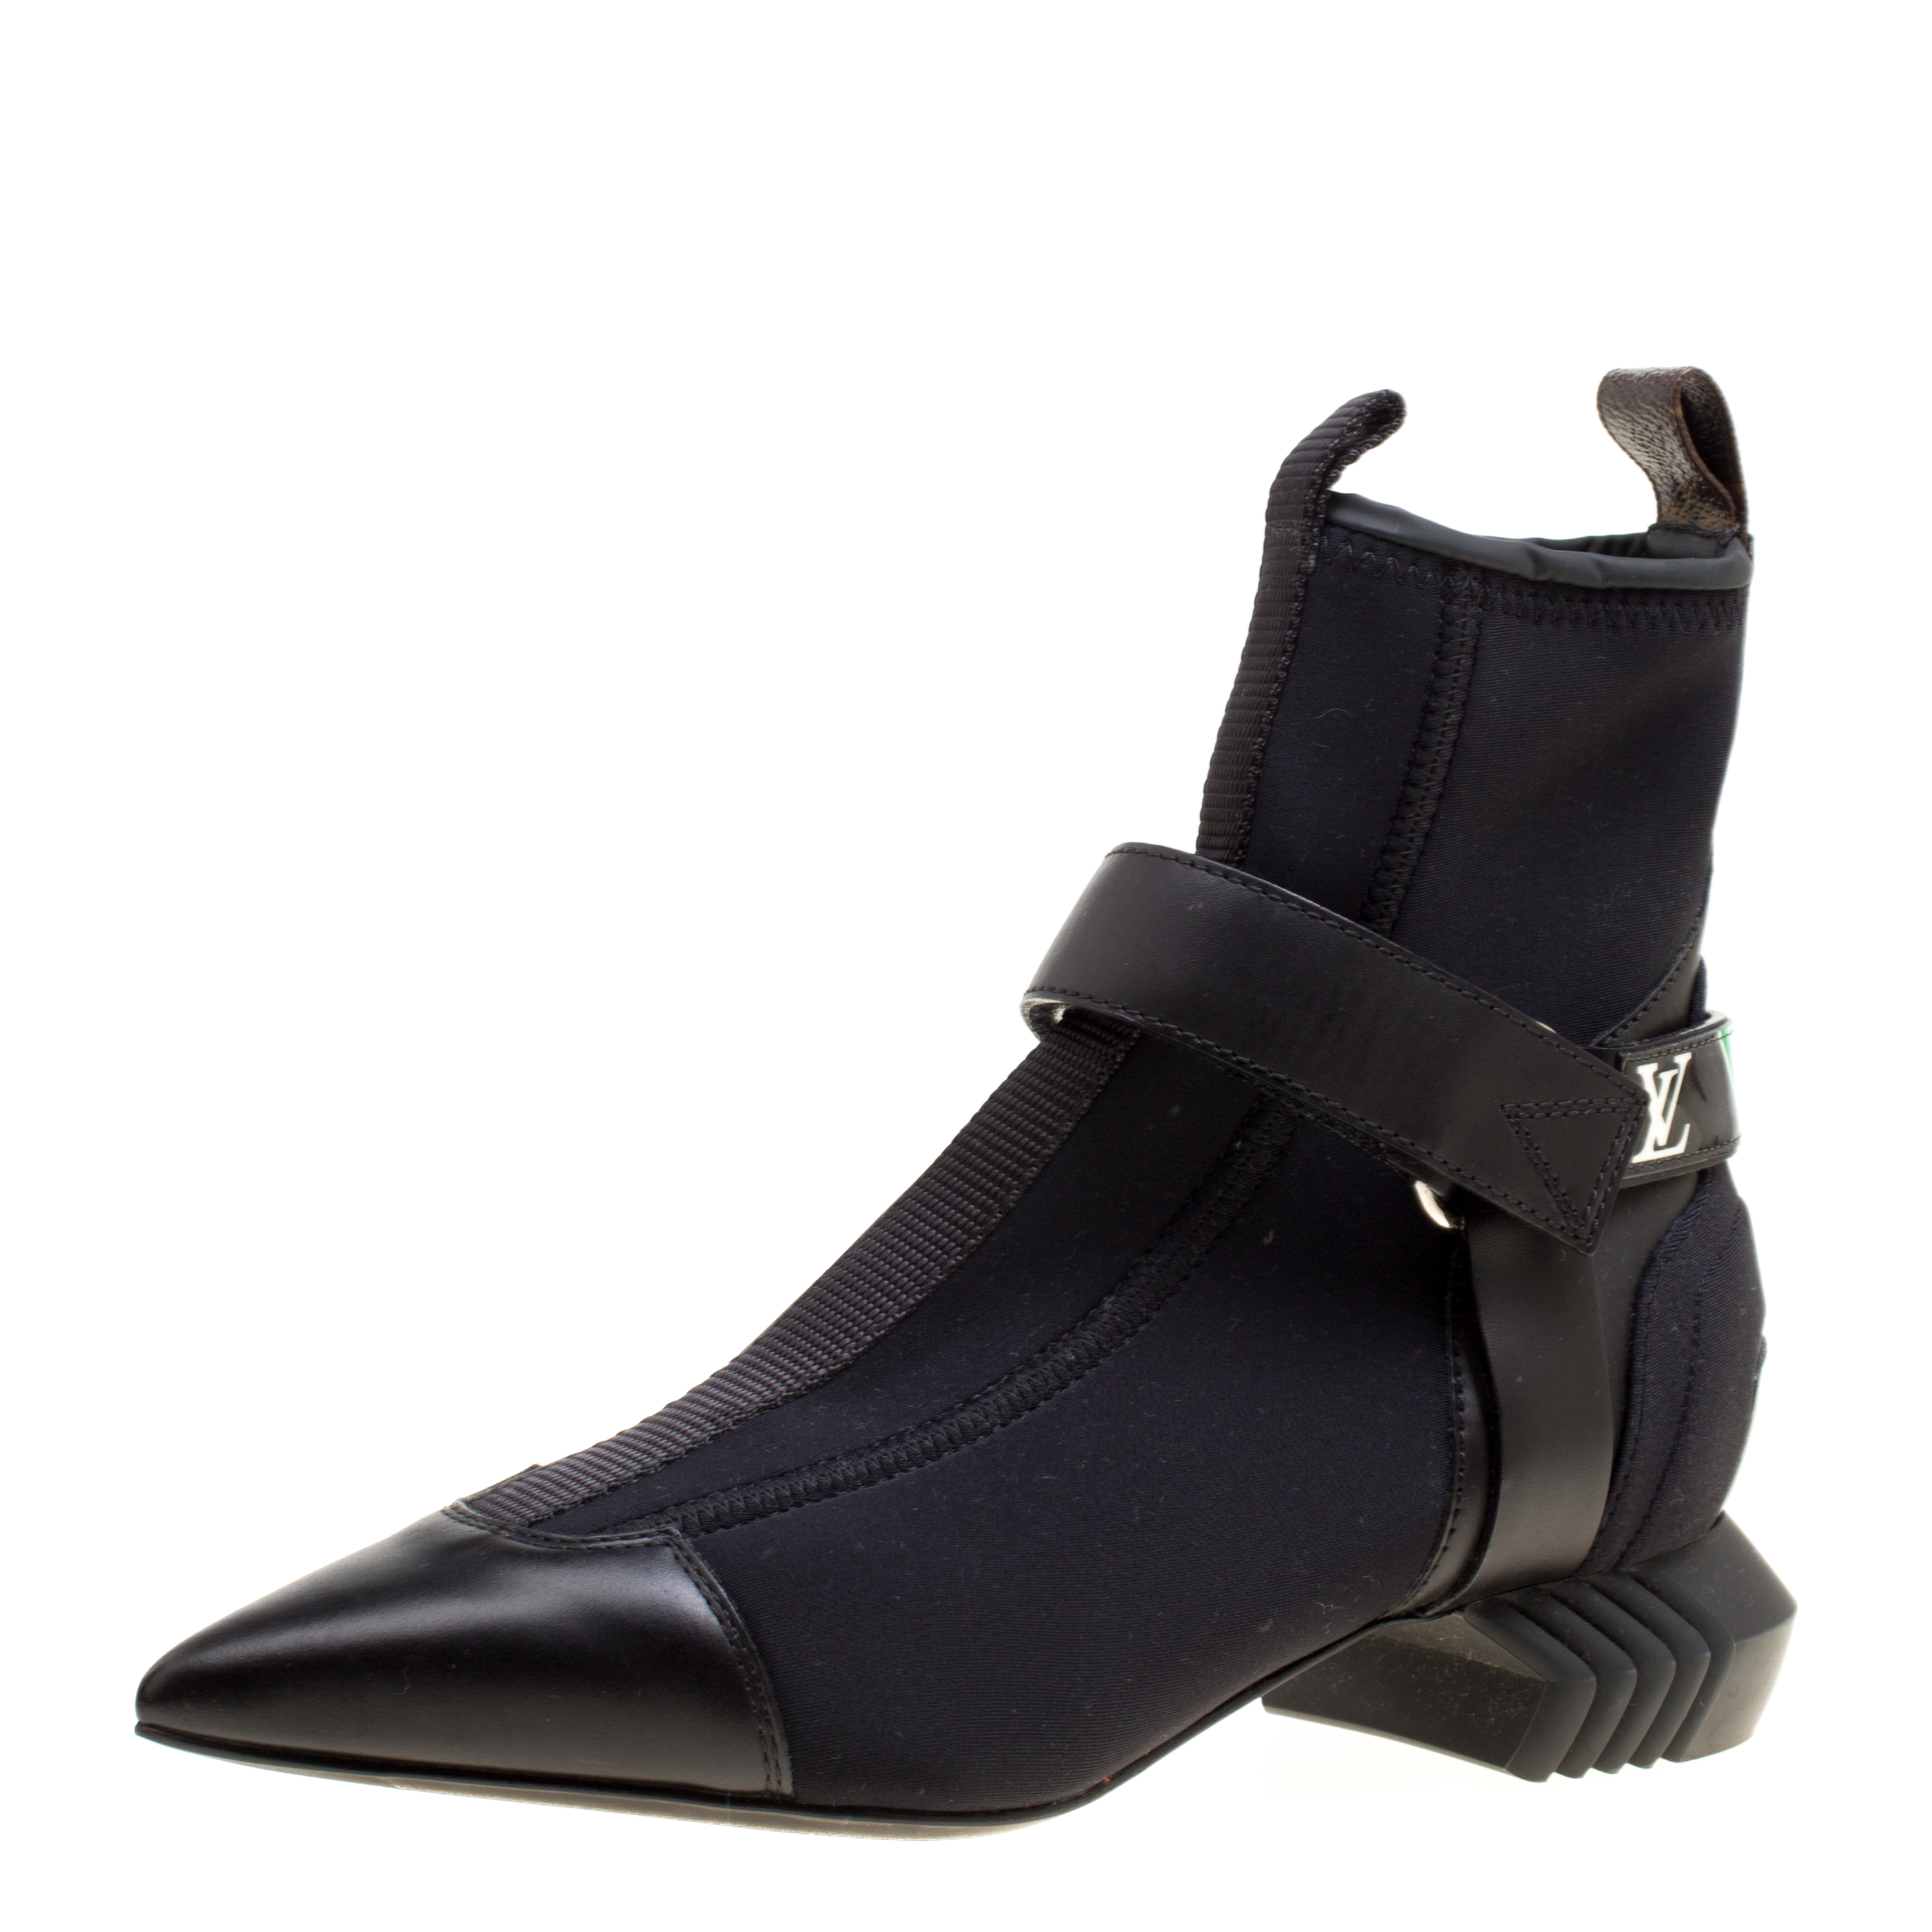 4df2f7c13b266 ... Black Neoprene and Leather Deep Sea Pointed Toe Ankle Boots Size 35.  nextprev. prevnext